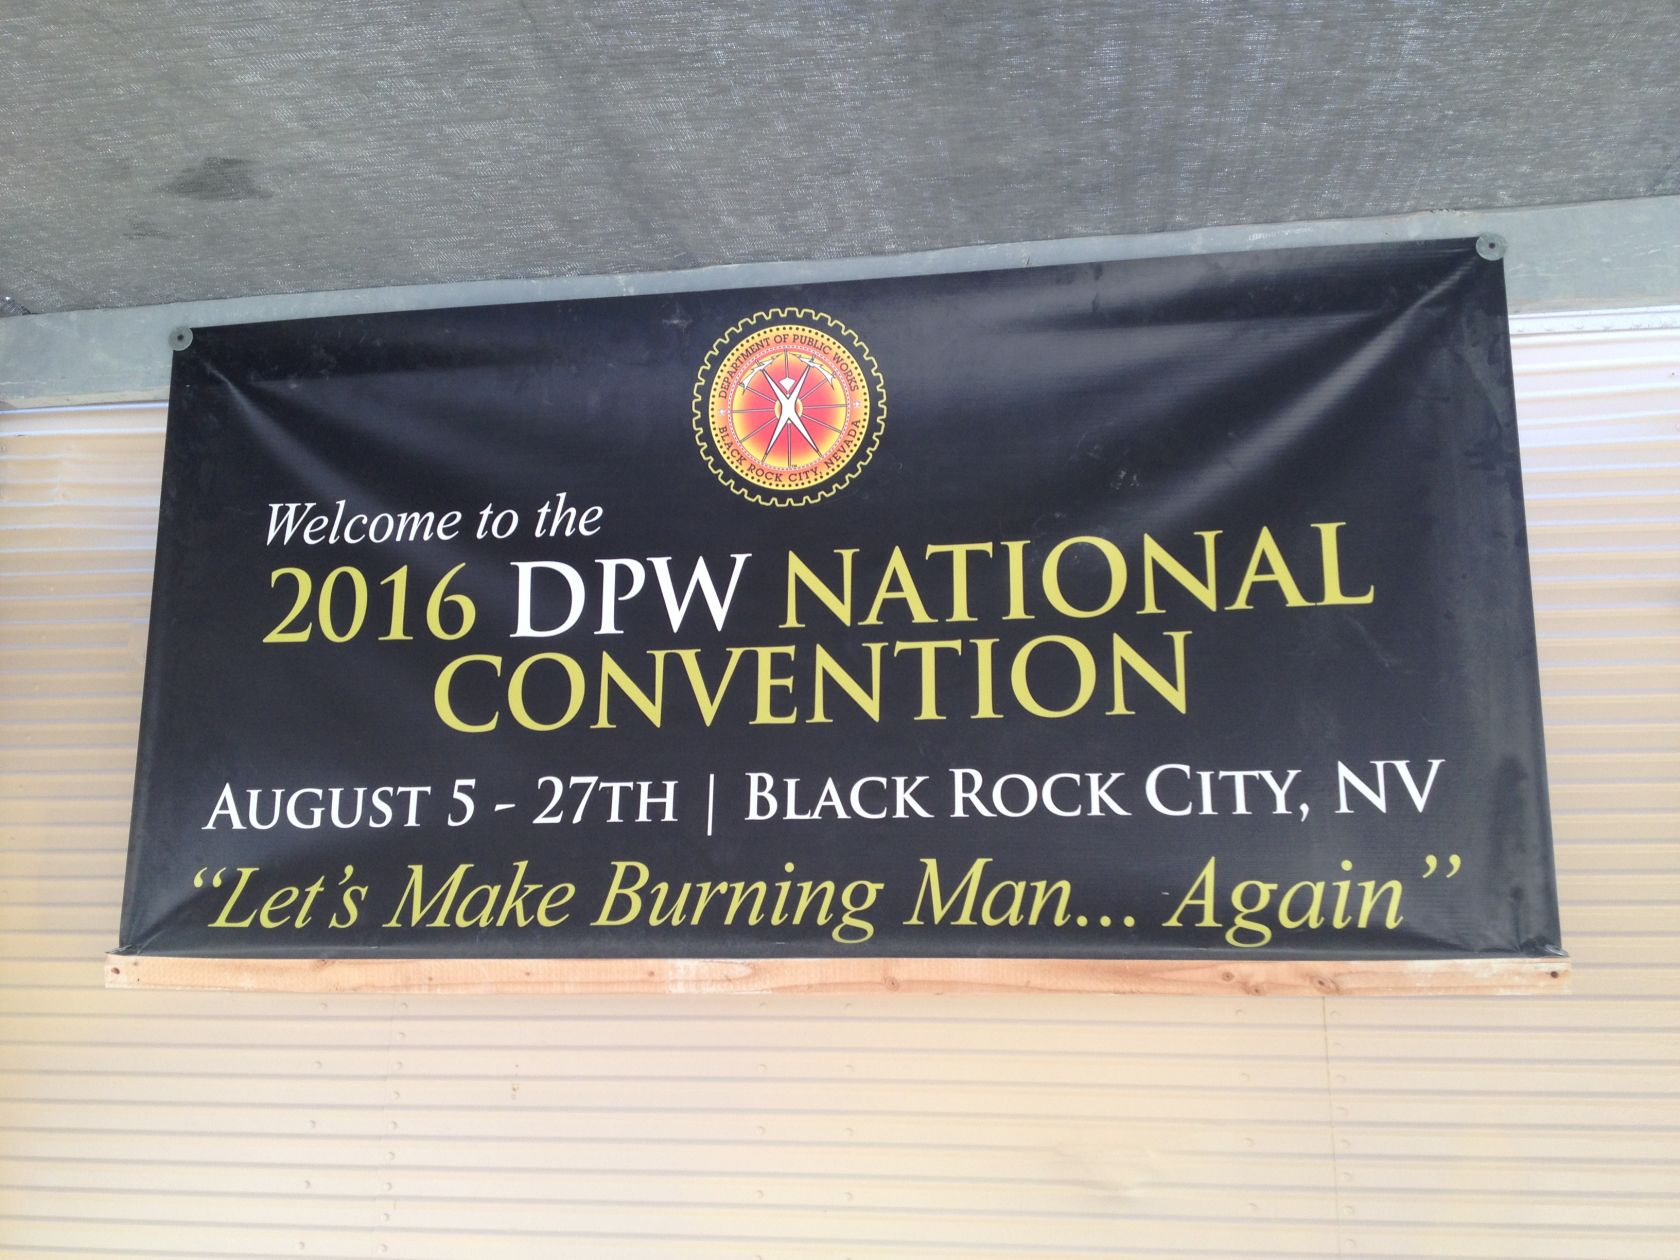 Depot manager Alipato had this banner made to troll everyone in the DPW during our morning meetings